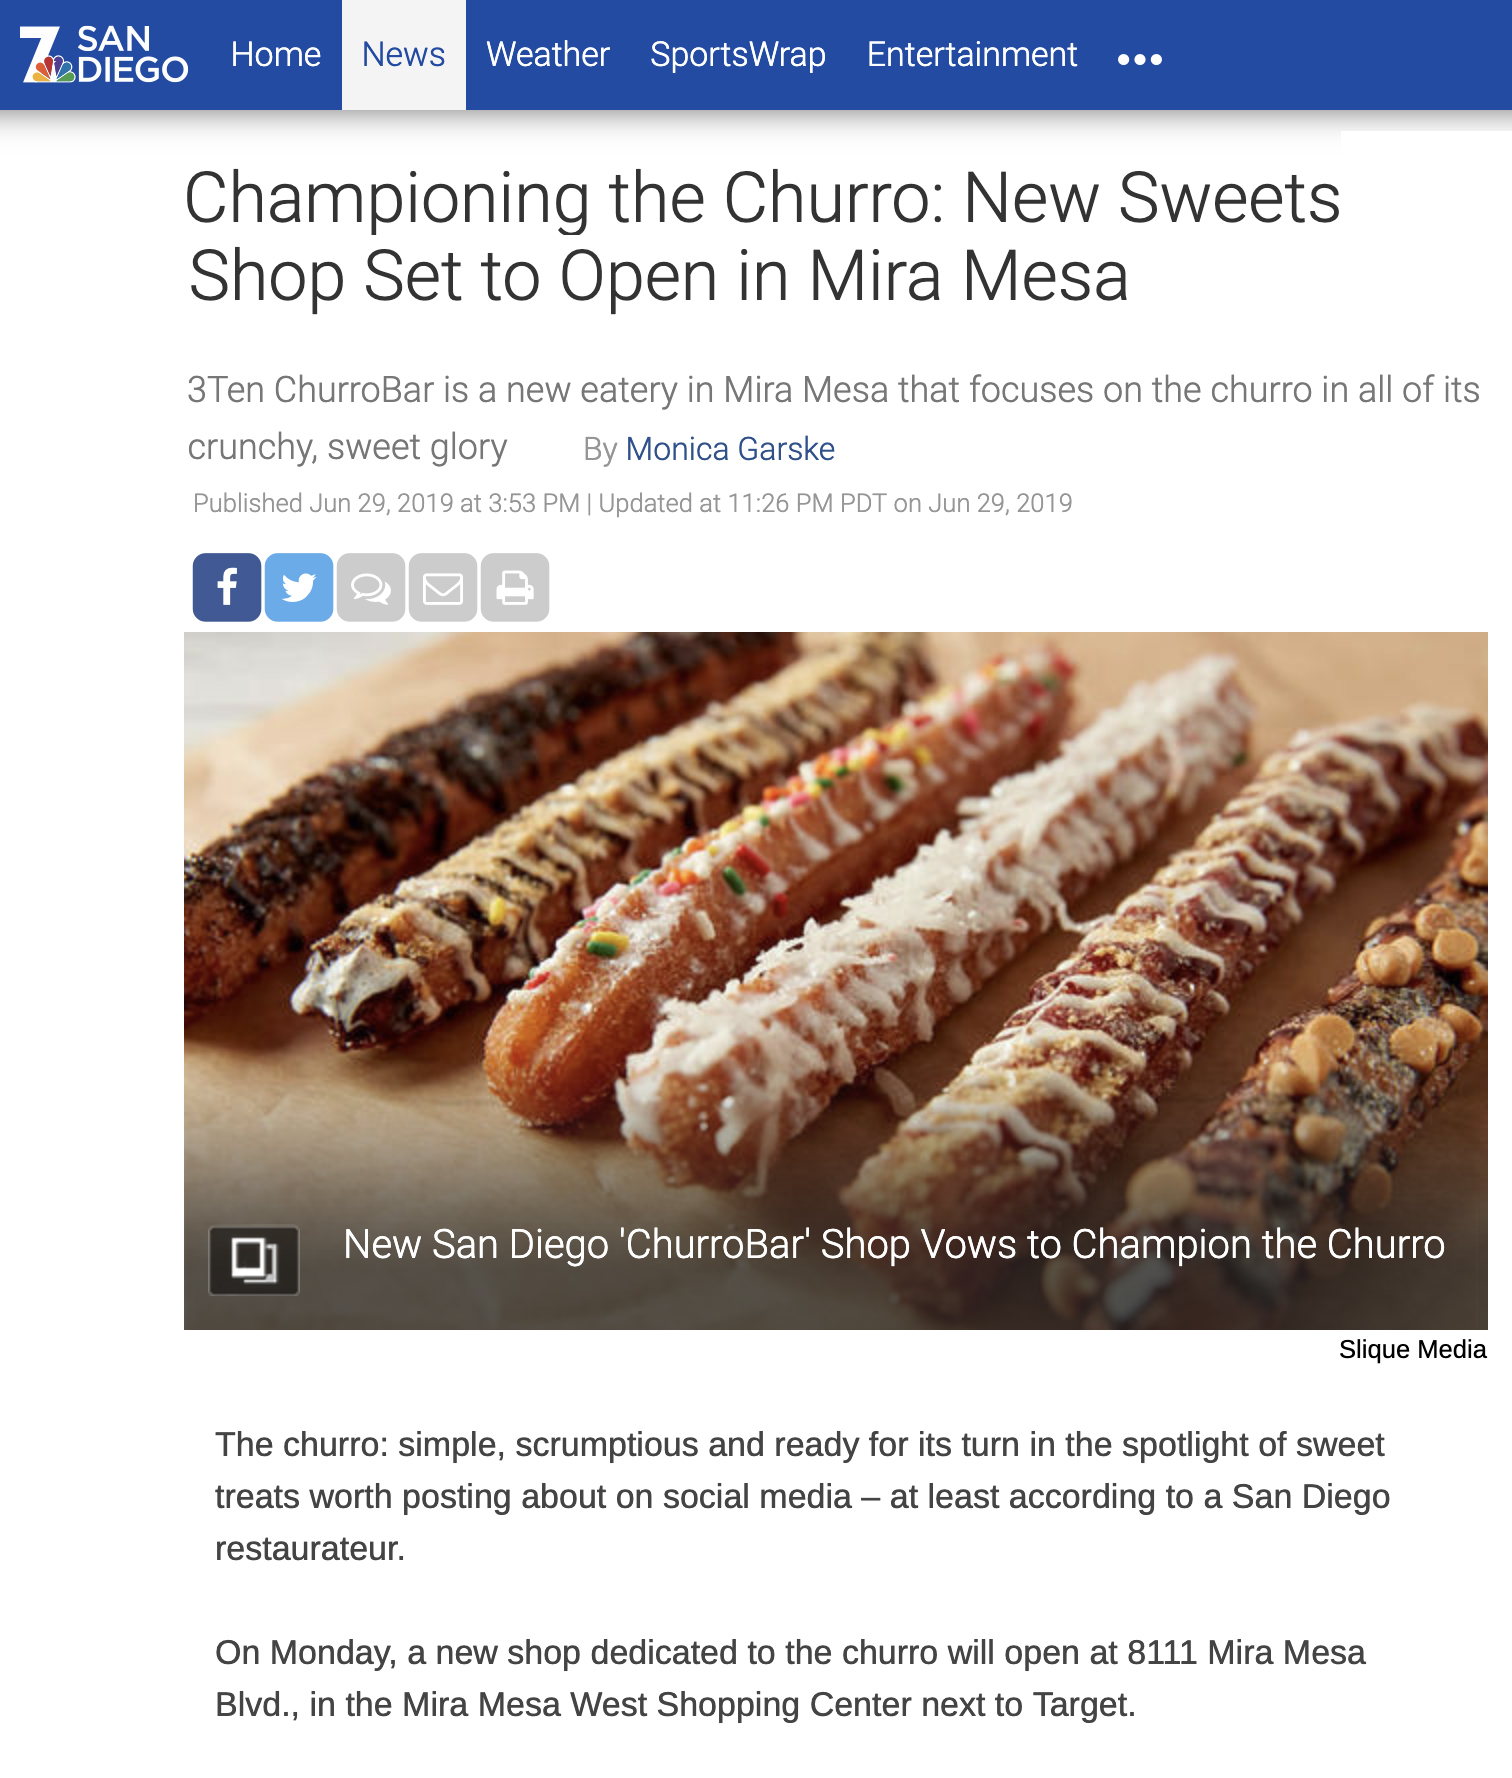 NBC SAN DIEGO - Championing the Churro: New Sweets Shop Set to Open in Mira Mesa